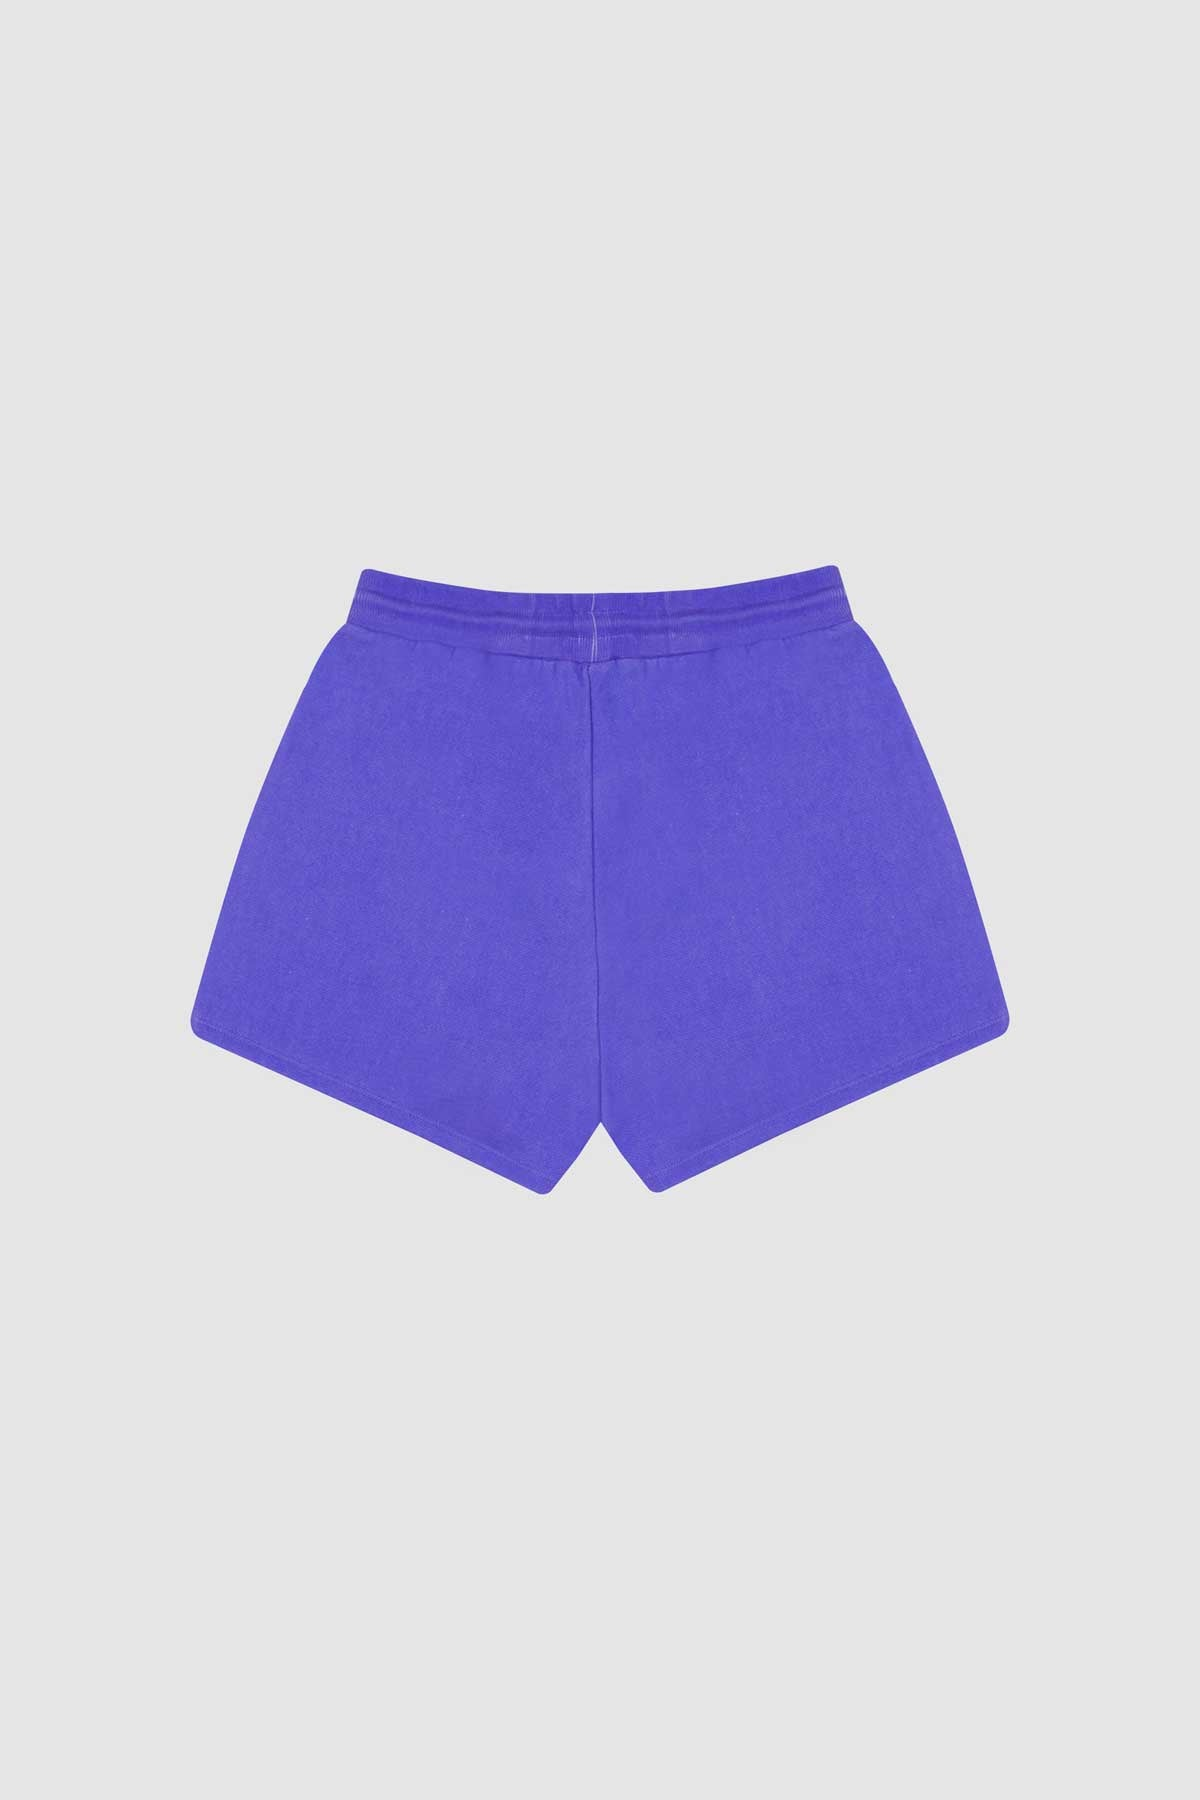 Photo of Violet Kush Women's Sweat Shorts, number 4